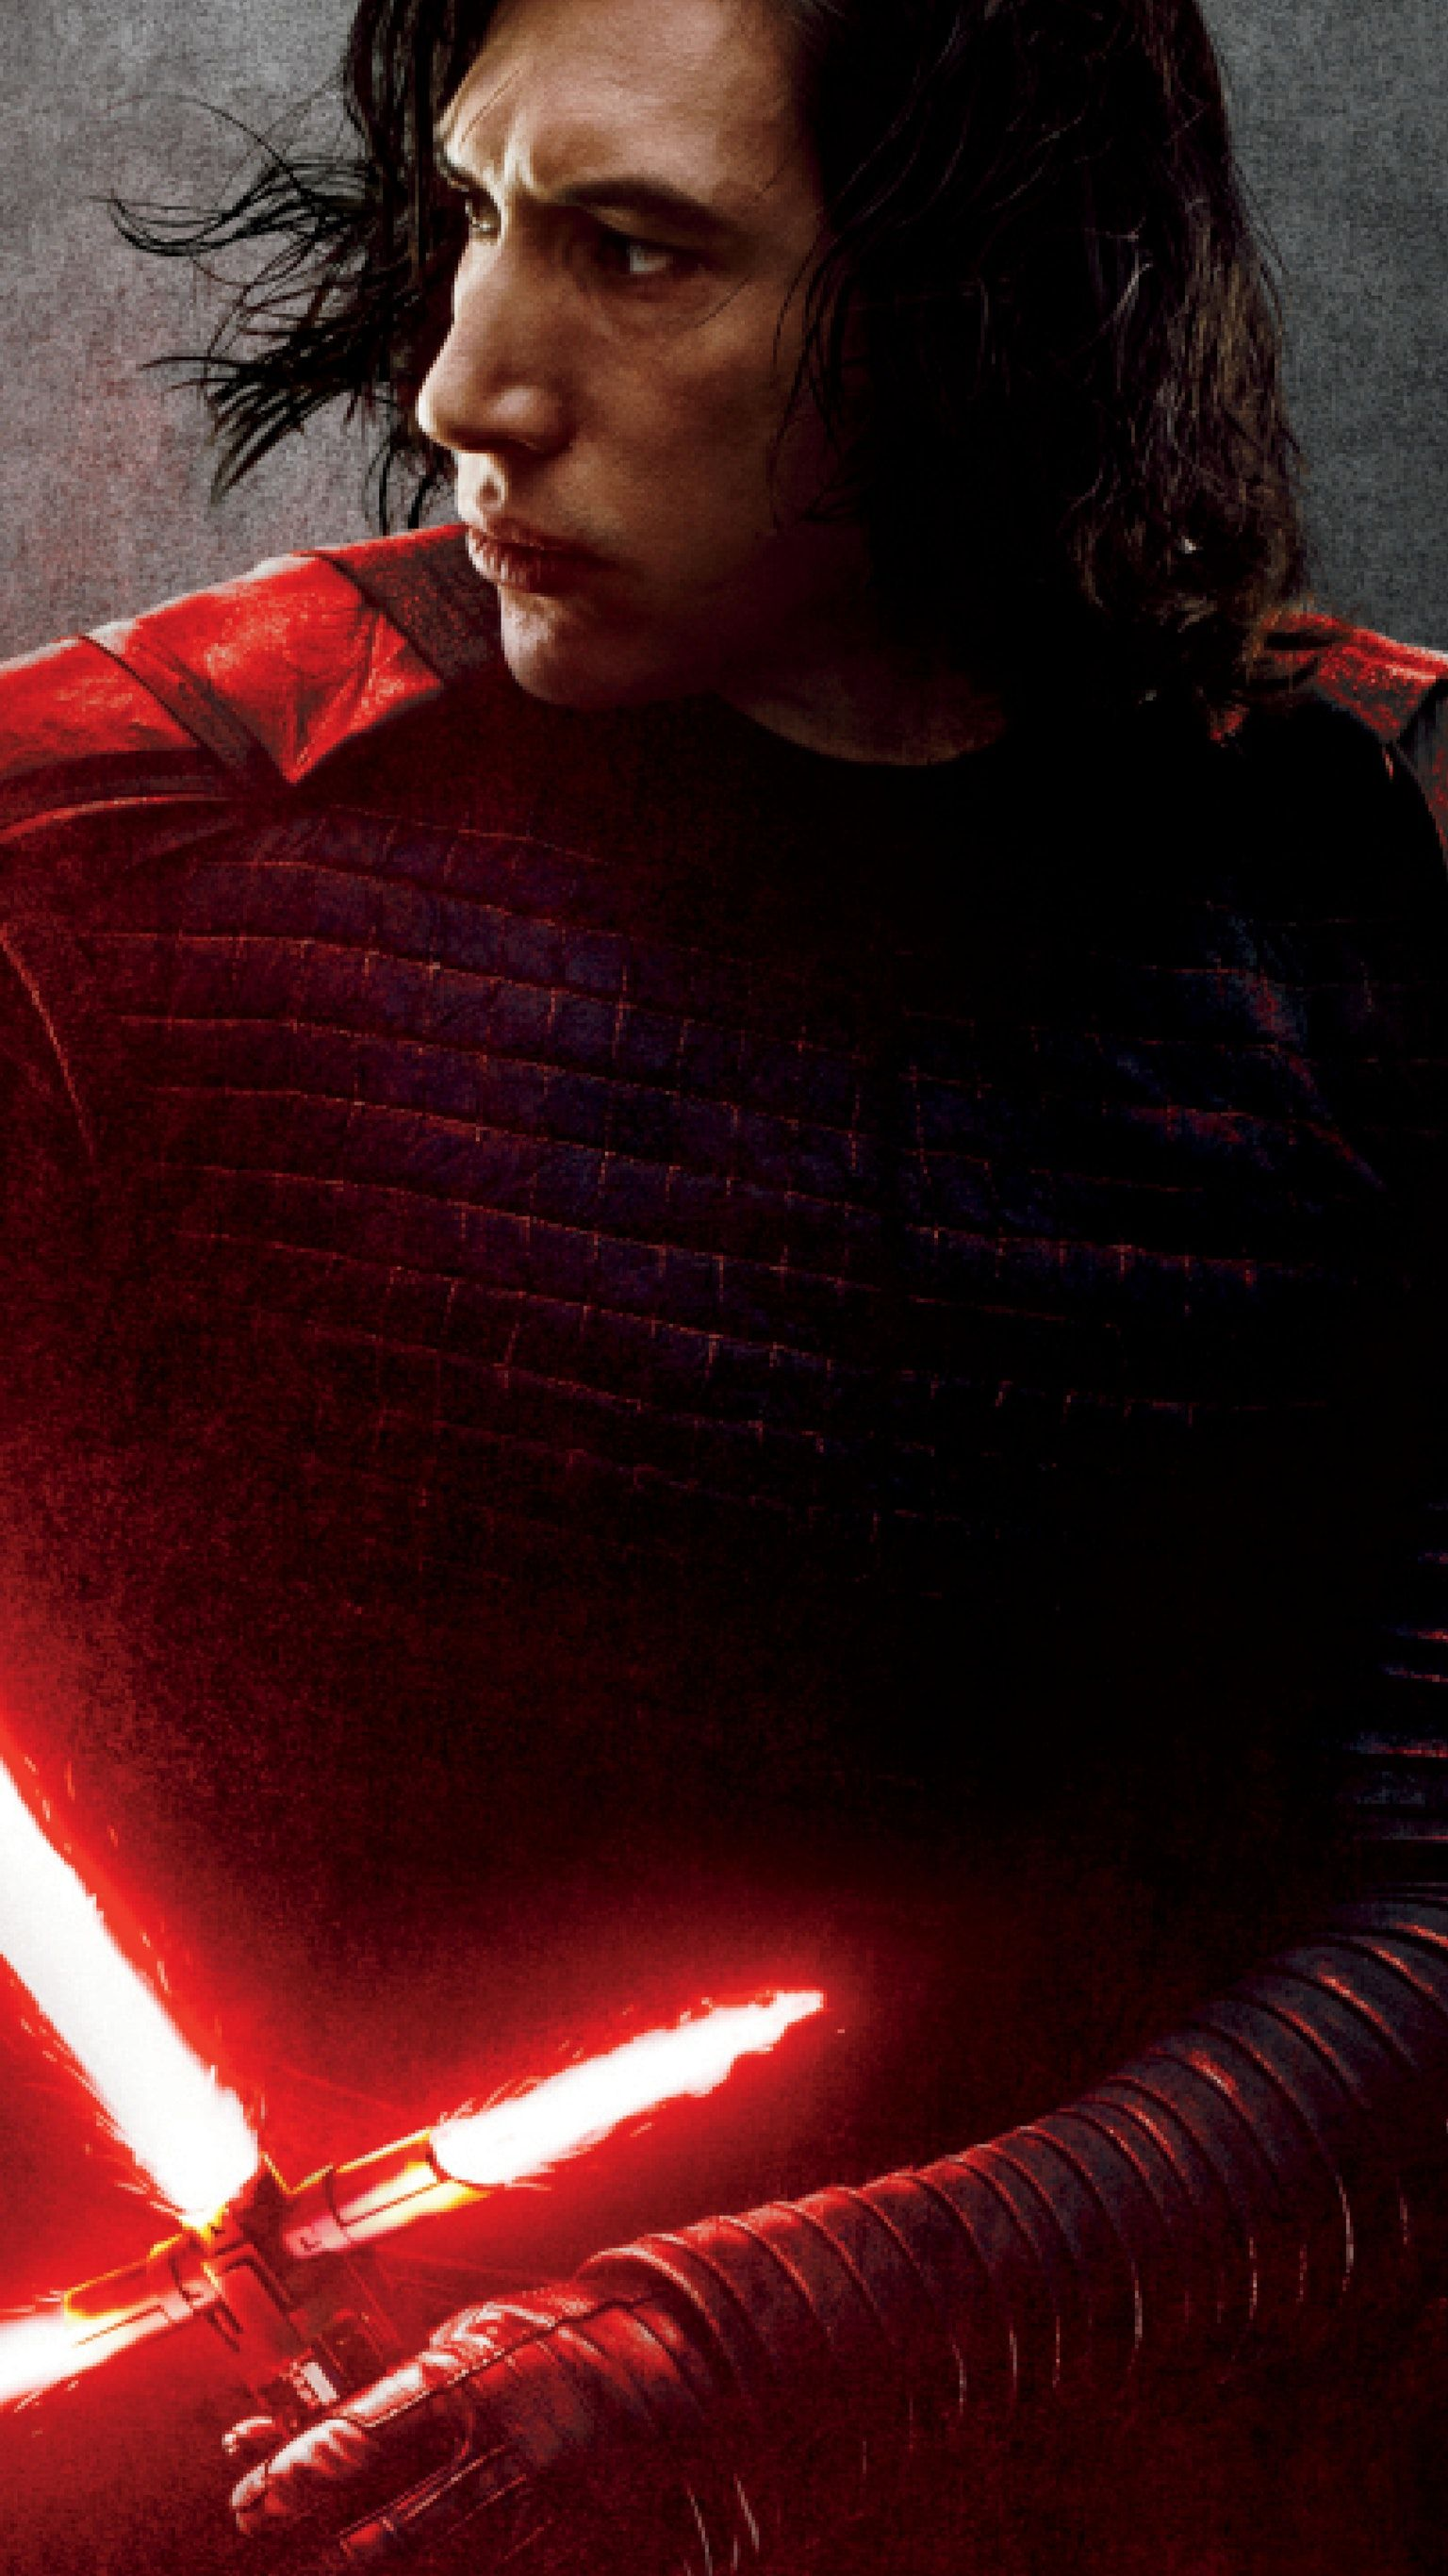 The Last Jedi Phone Wallpaper Star Wars The Last Jedi Kylo Ren 374112 Hd Wallpaper Backgrounds Download